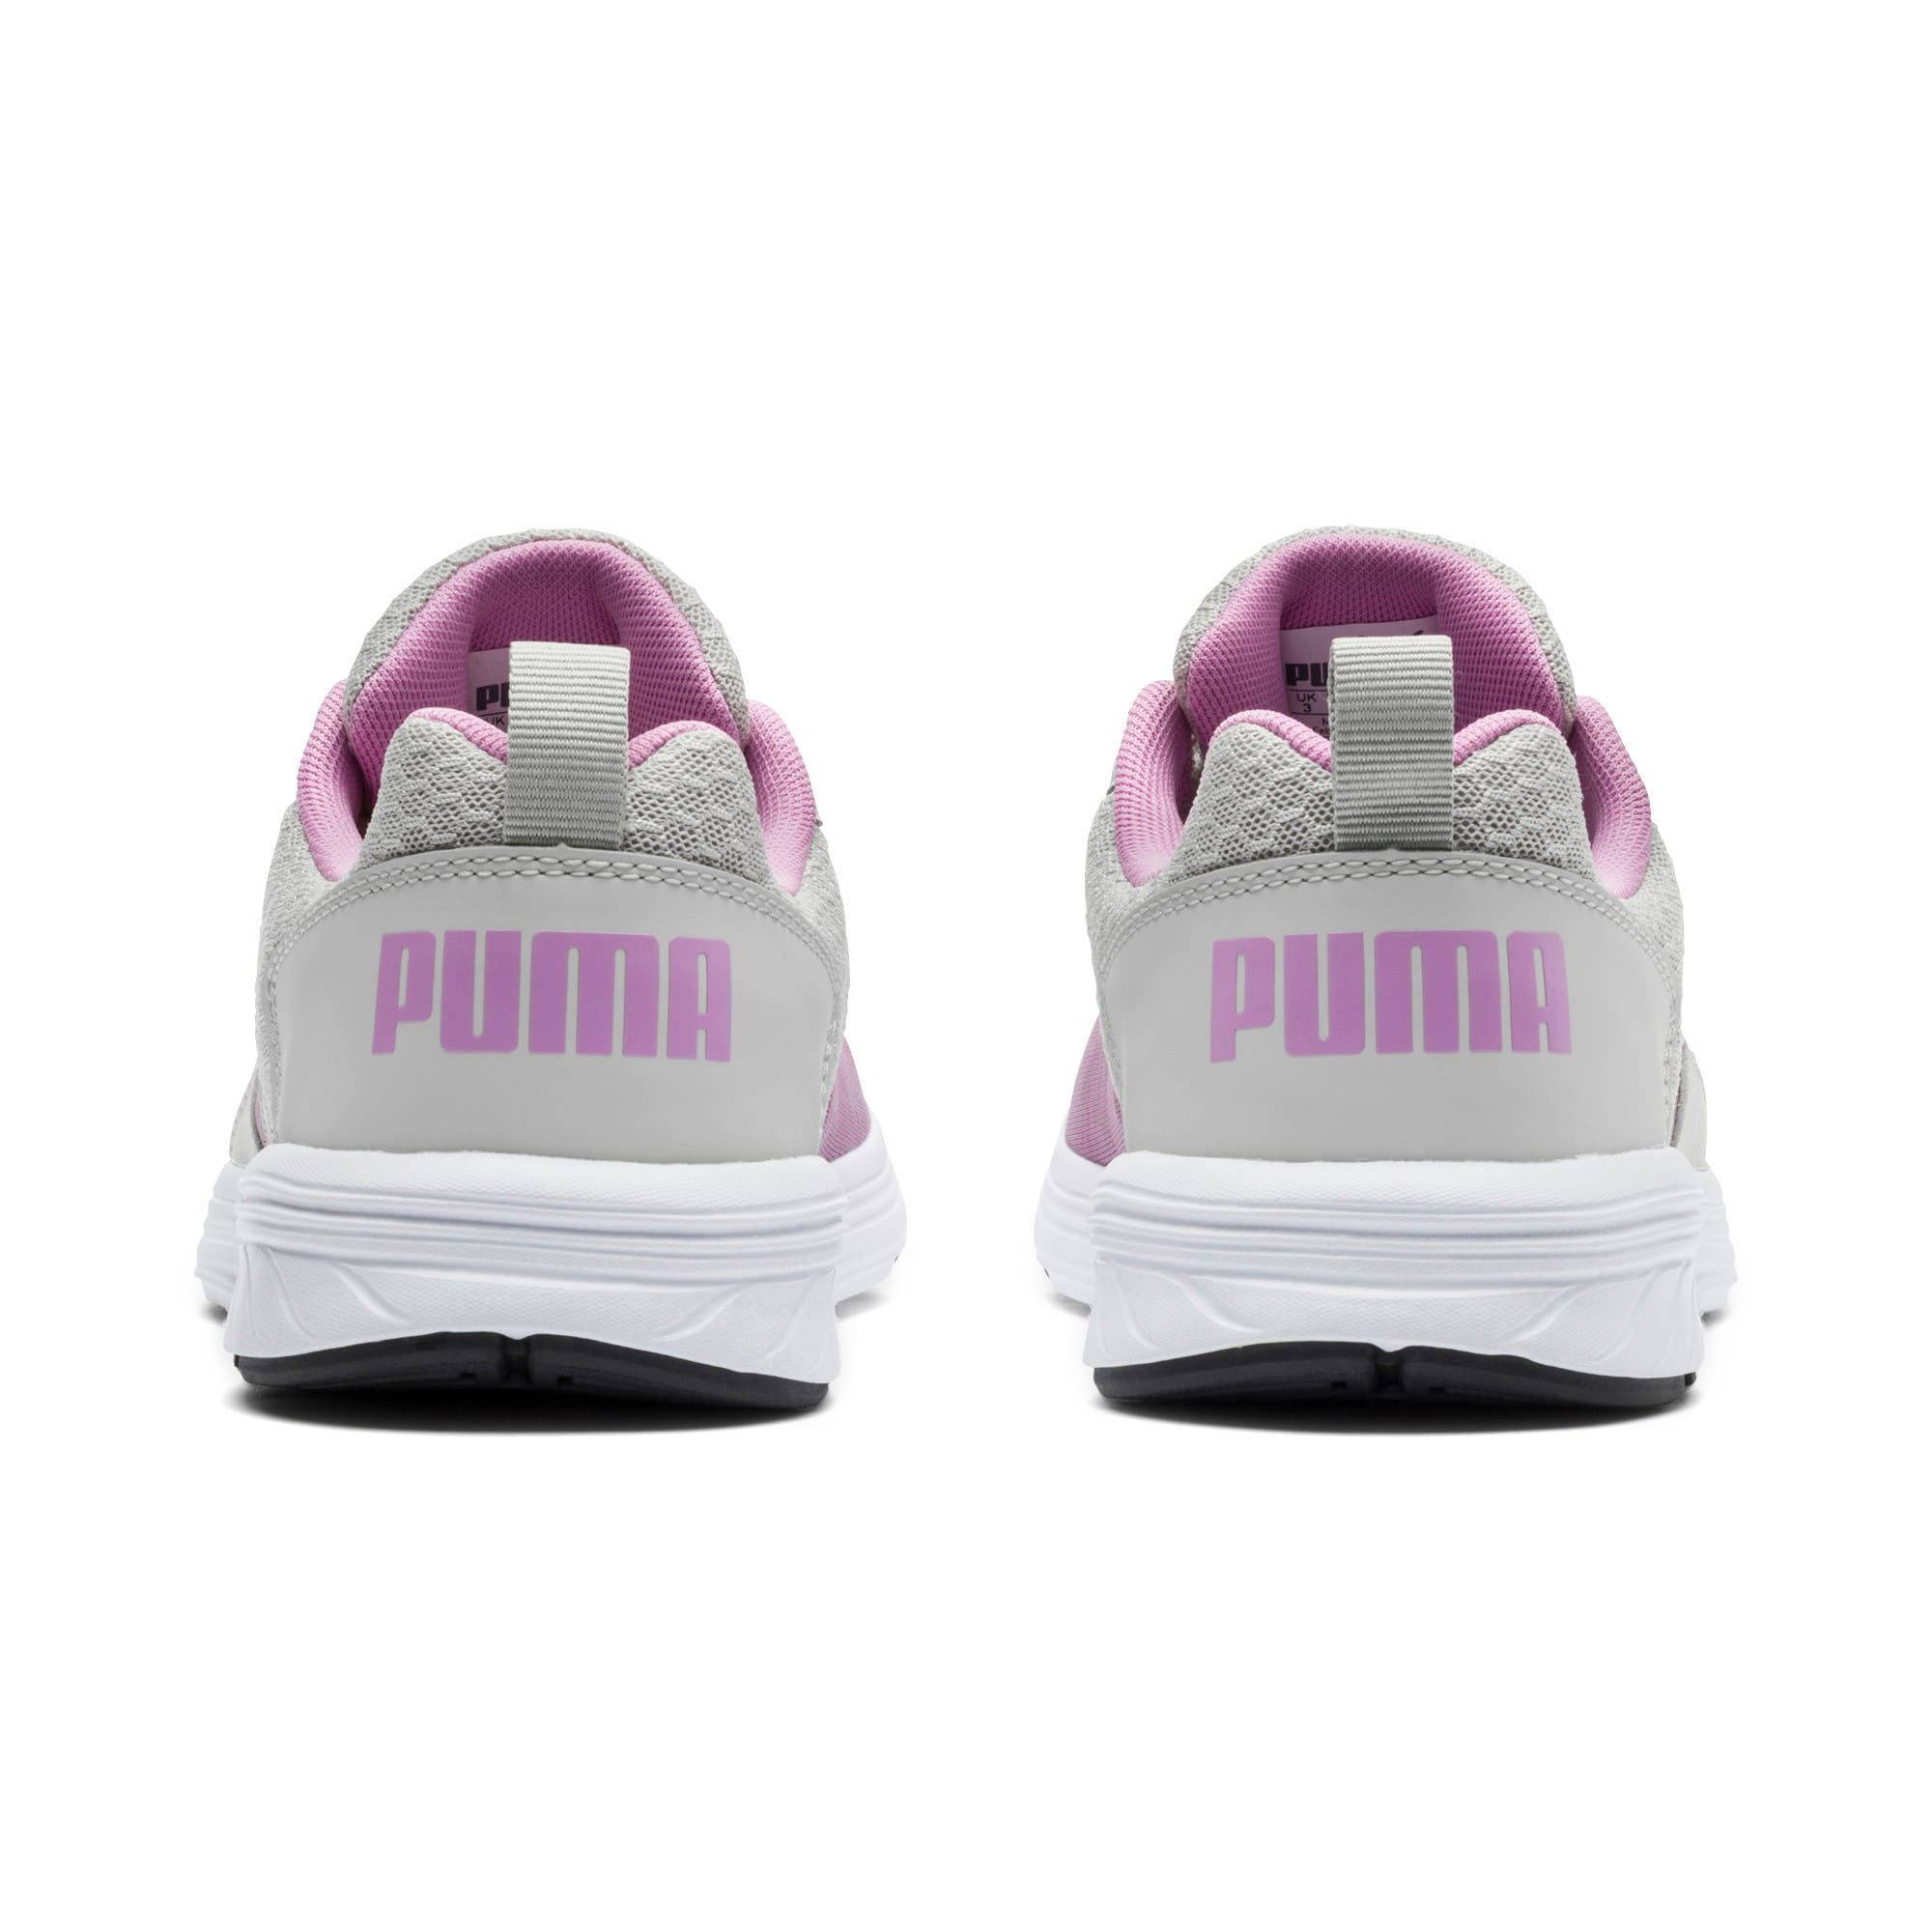 Thumbnail 3 of NRGY Comet Kids' Training Shoes, Gray Violet-Orchid, medium-IND